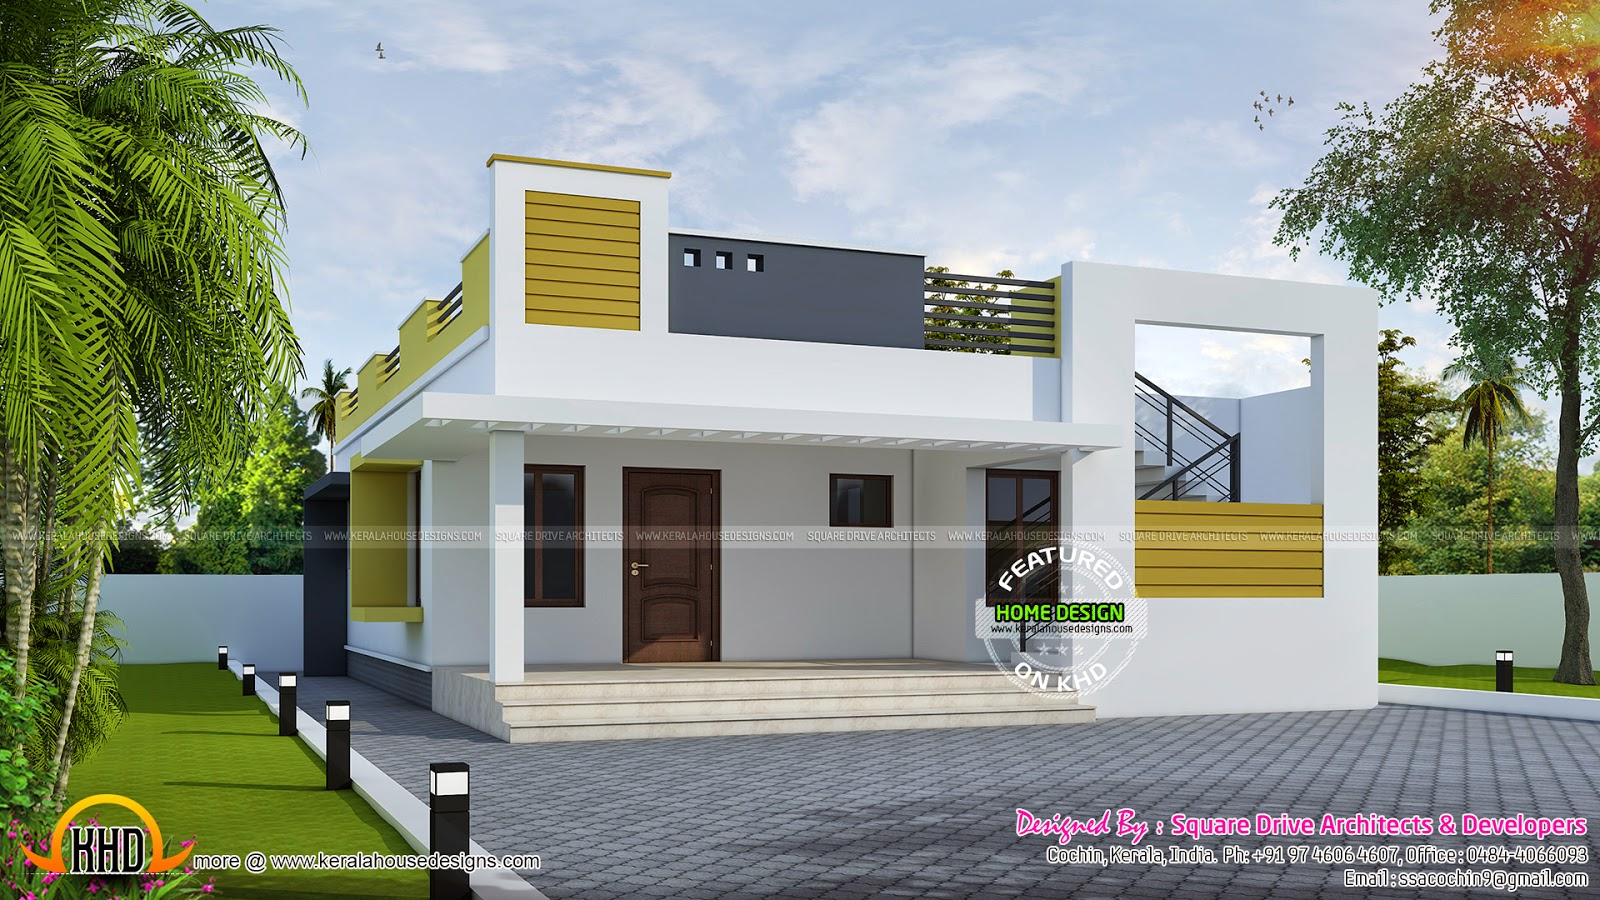 Simple contemporary home kerala home design and floor plans for Simple house design